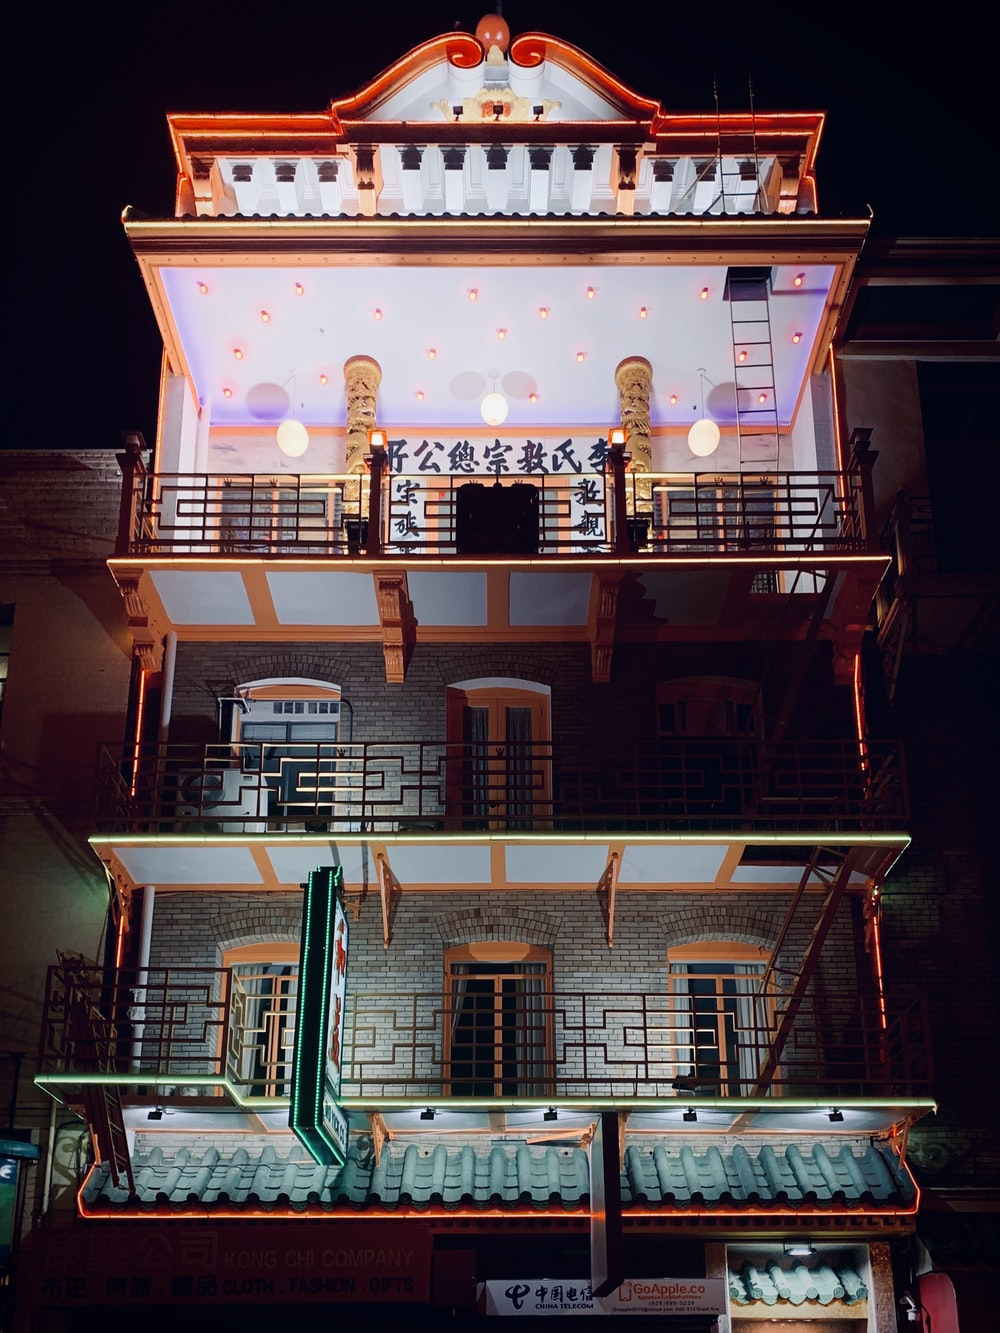 building with balconies during night